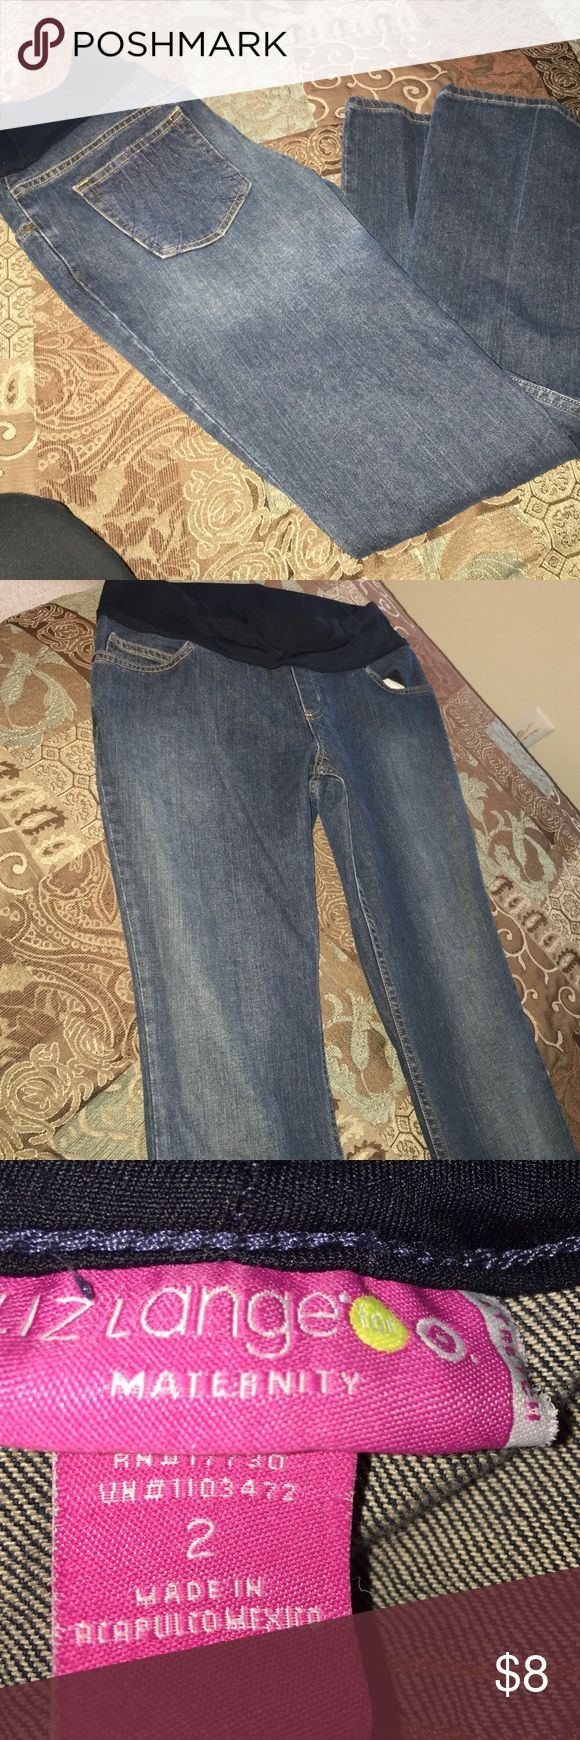 Liz Lange Maternity Stretch Jeans Blue stretch maternity jeans, tag says size 2, jeans seem to be a little bigger fits more like a medium, good condition, great low price. Liz Lange Jeans